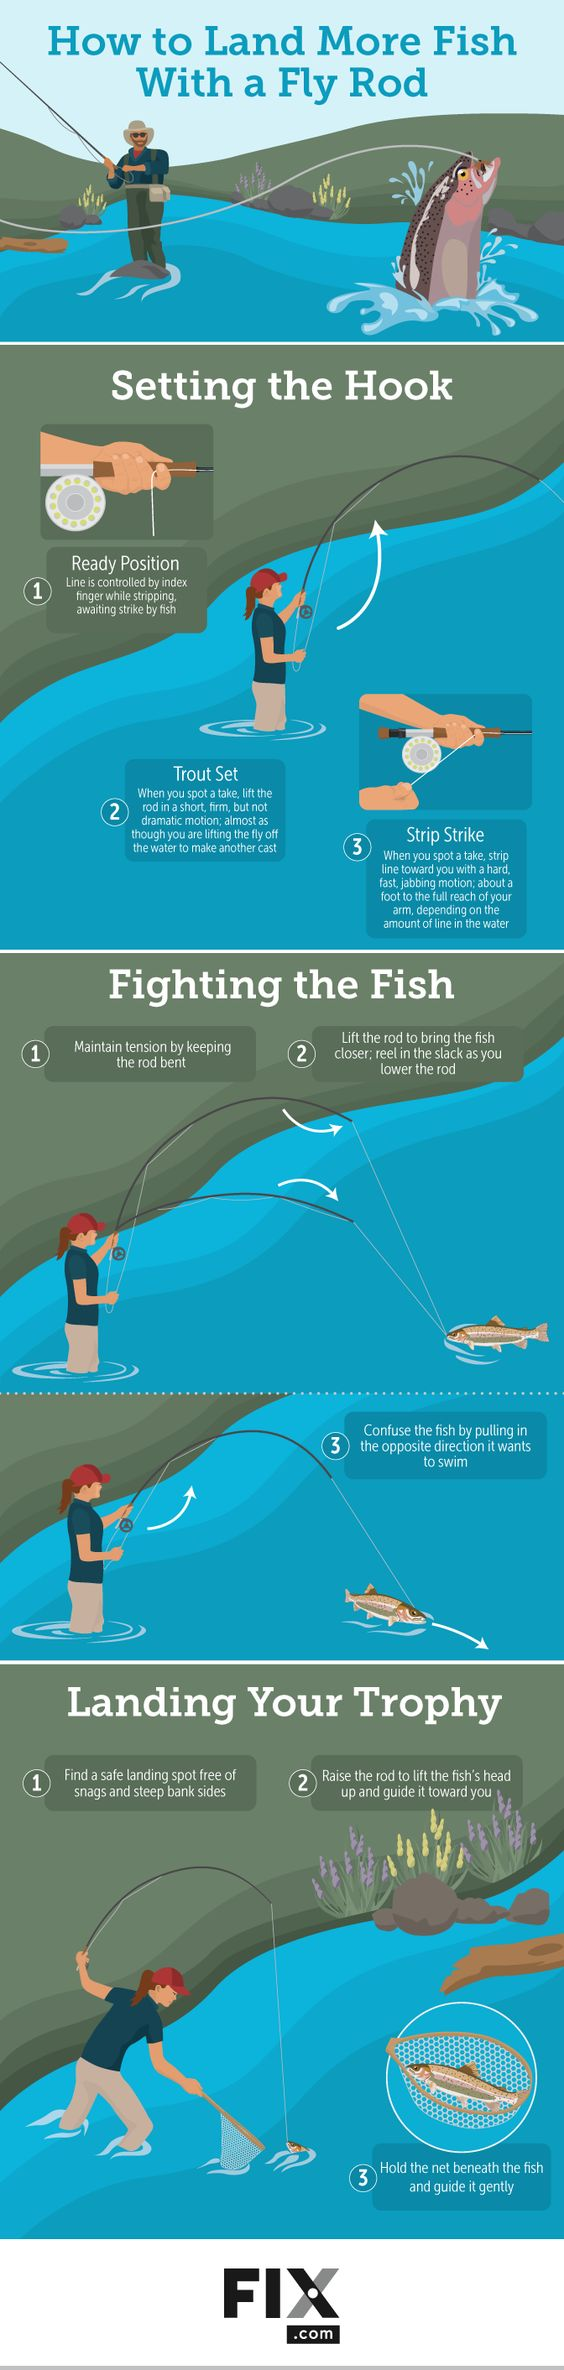 How to Land More Fish With a Fly Rod #Infographic #Fishing #HowTo